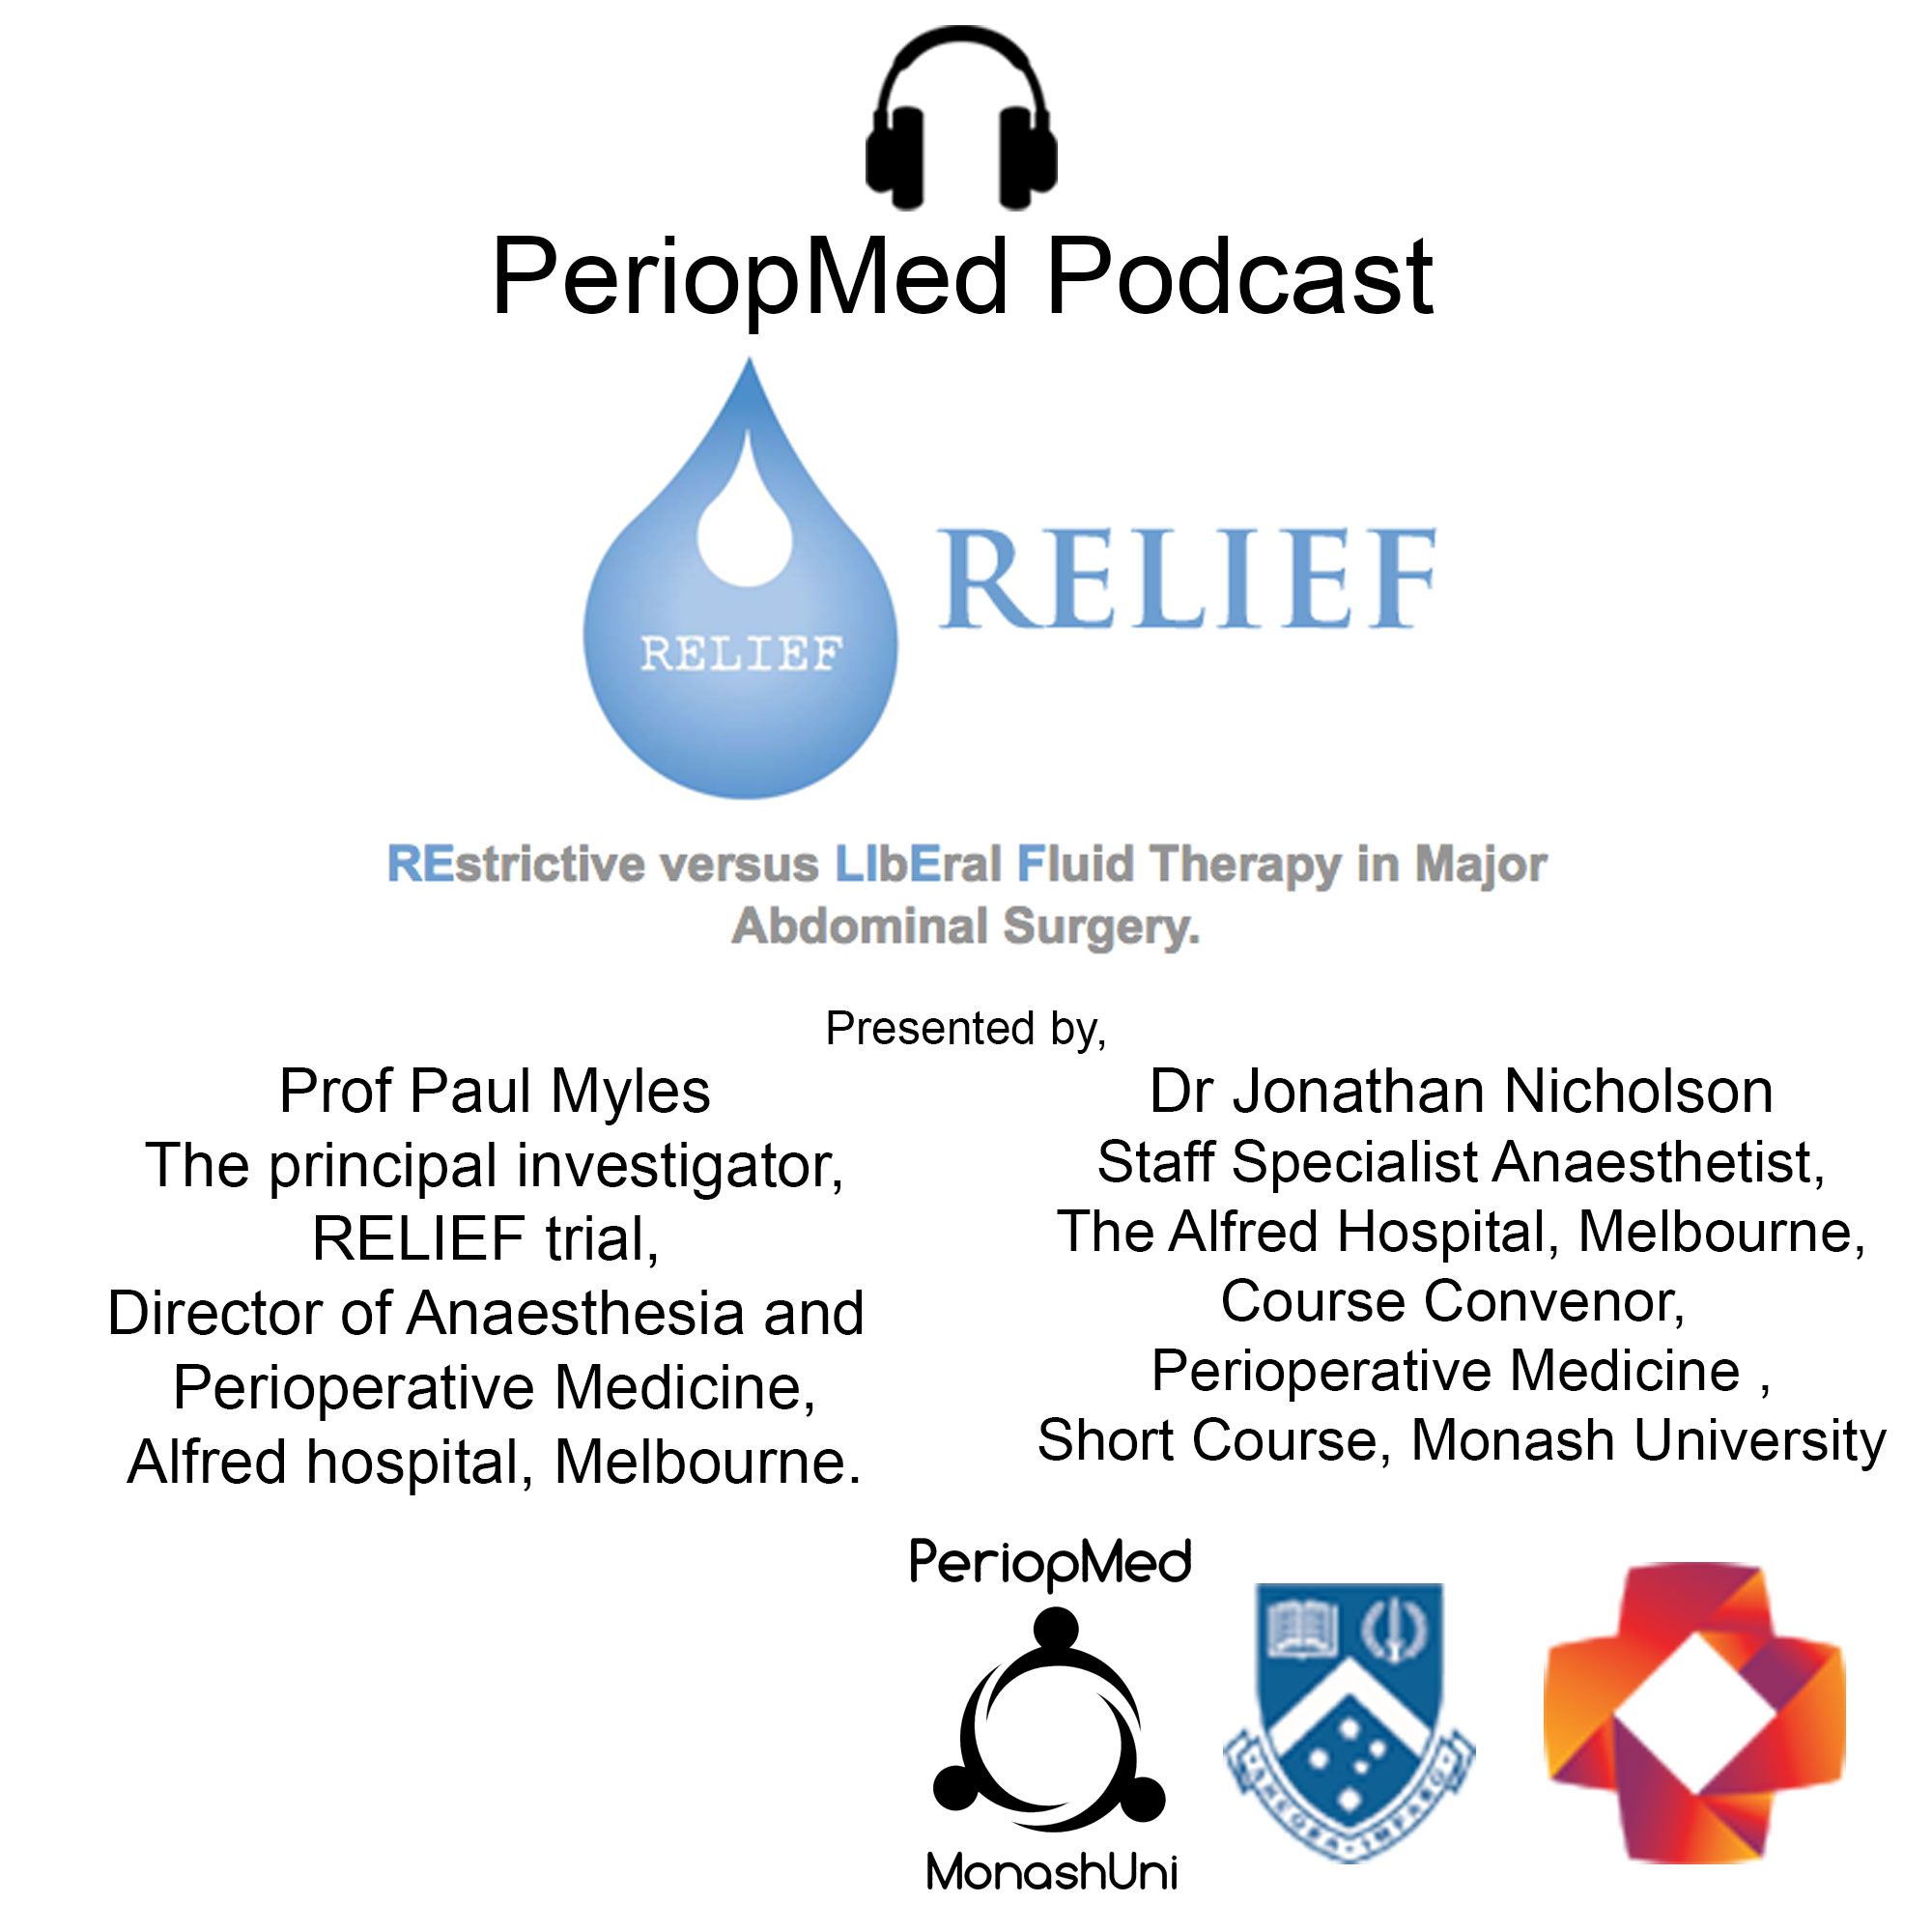 The RELIEF trial with Prof Paul Myles